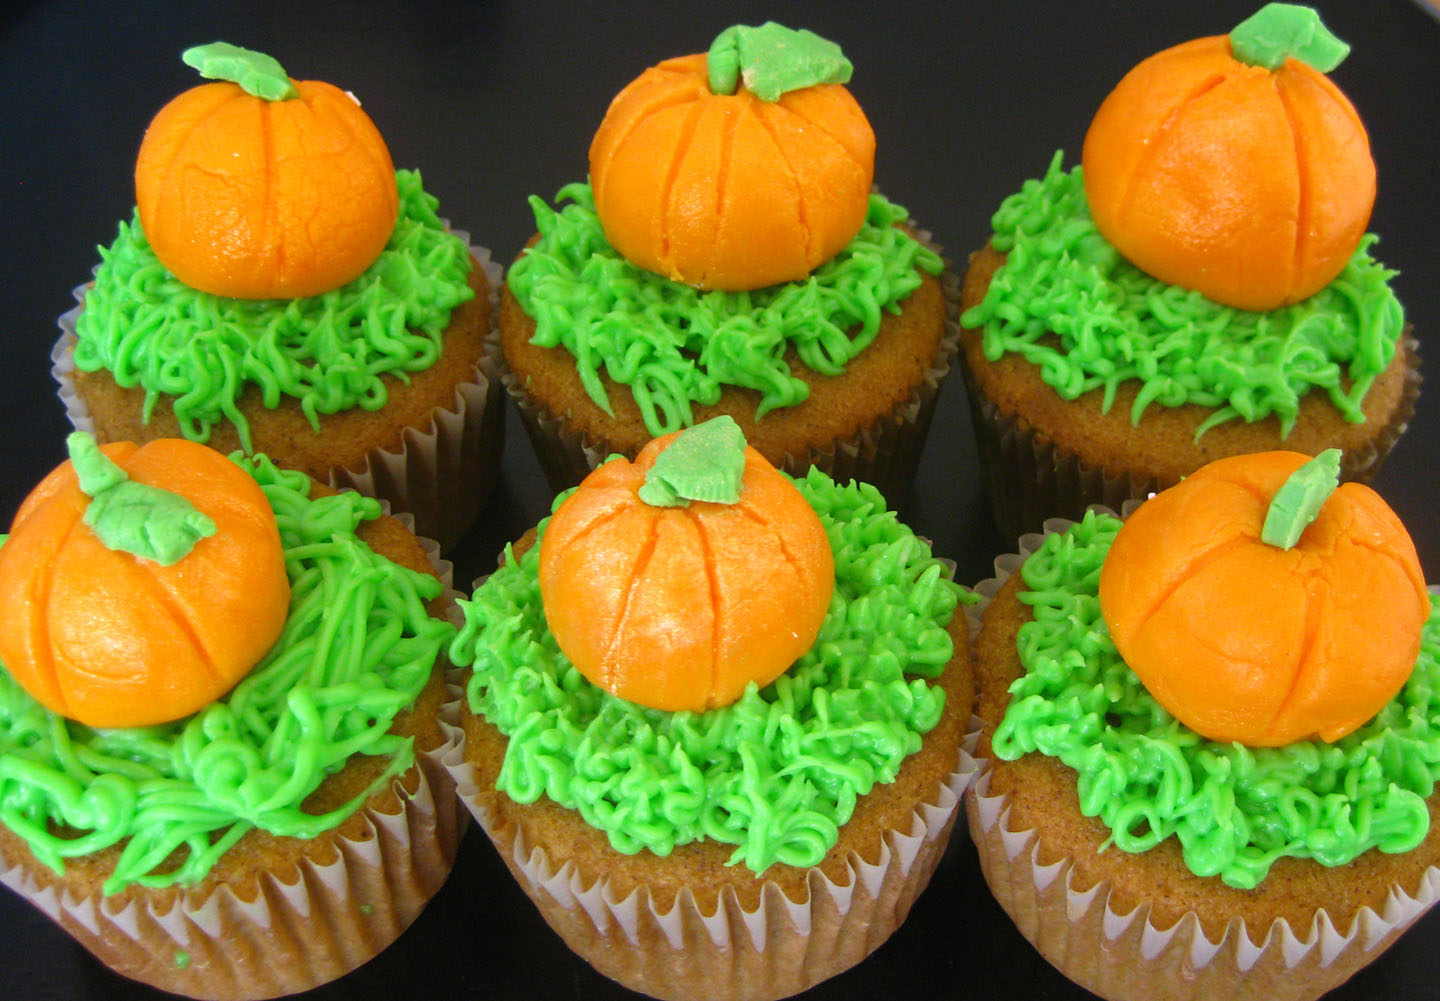 Pumpkin Fall Cupcake Ideas For Kids by romika | iFood.tv